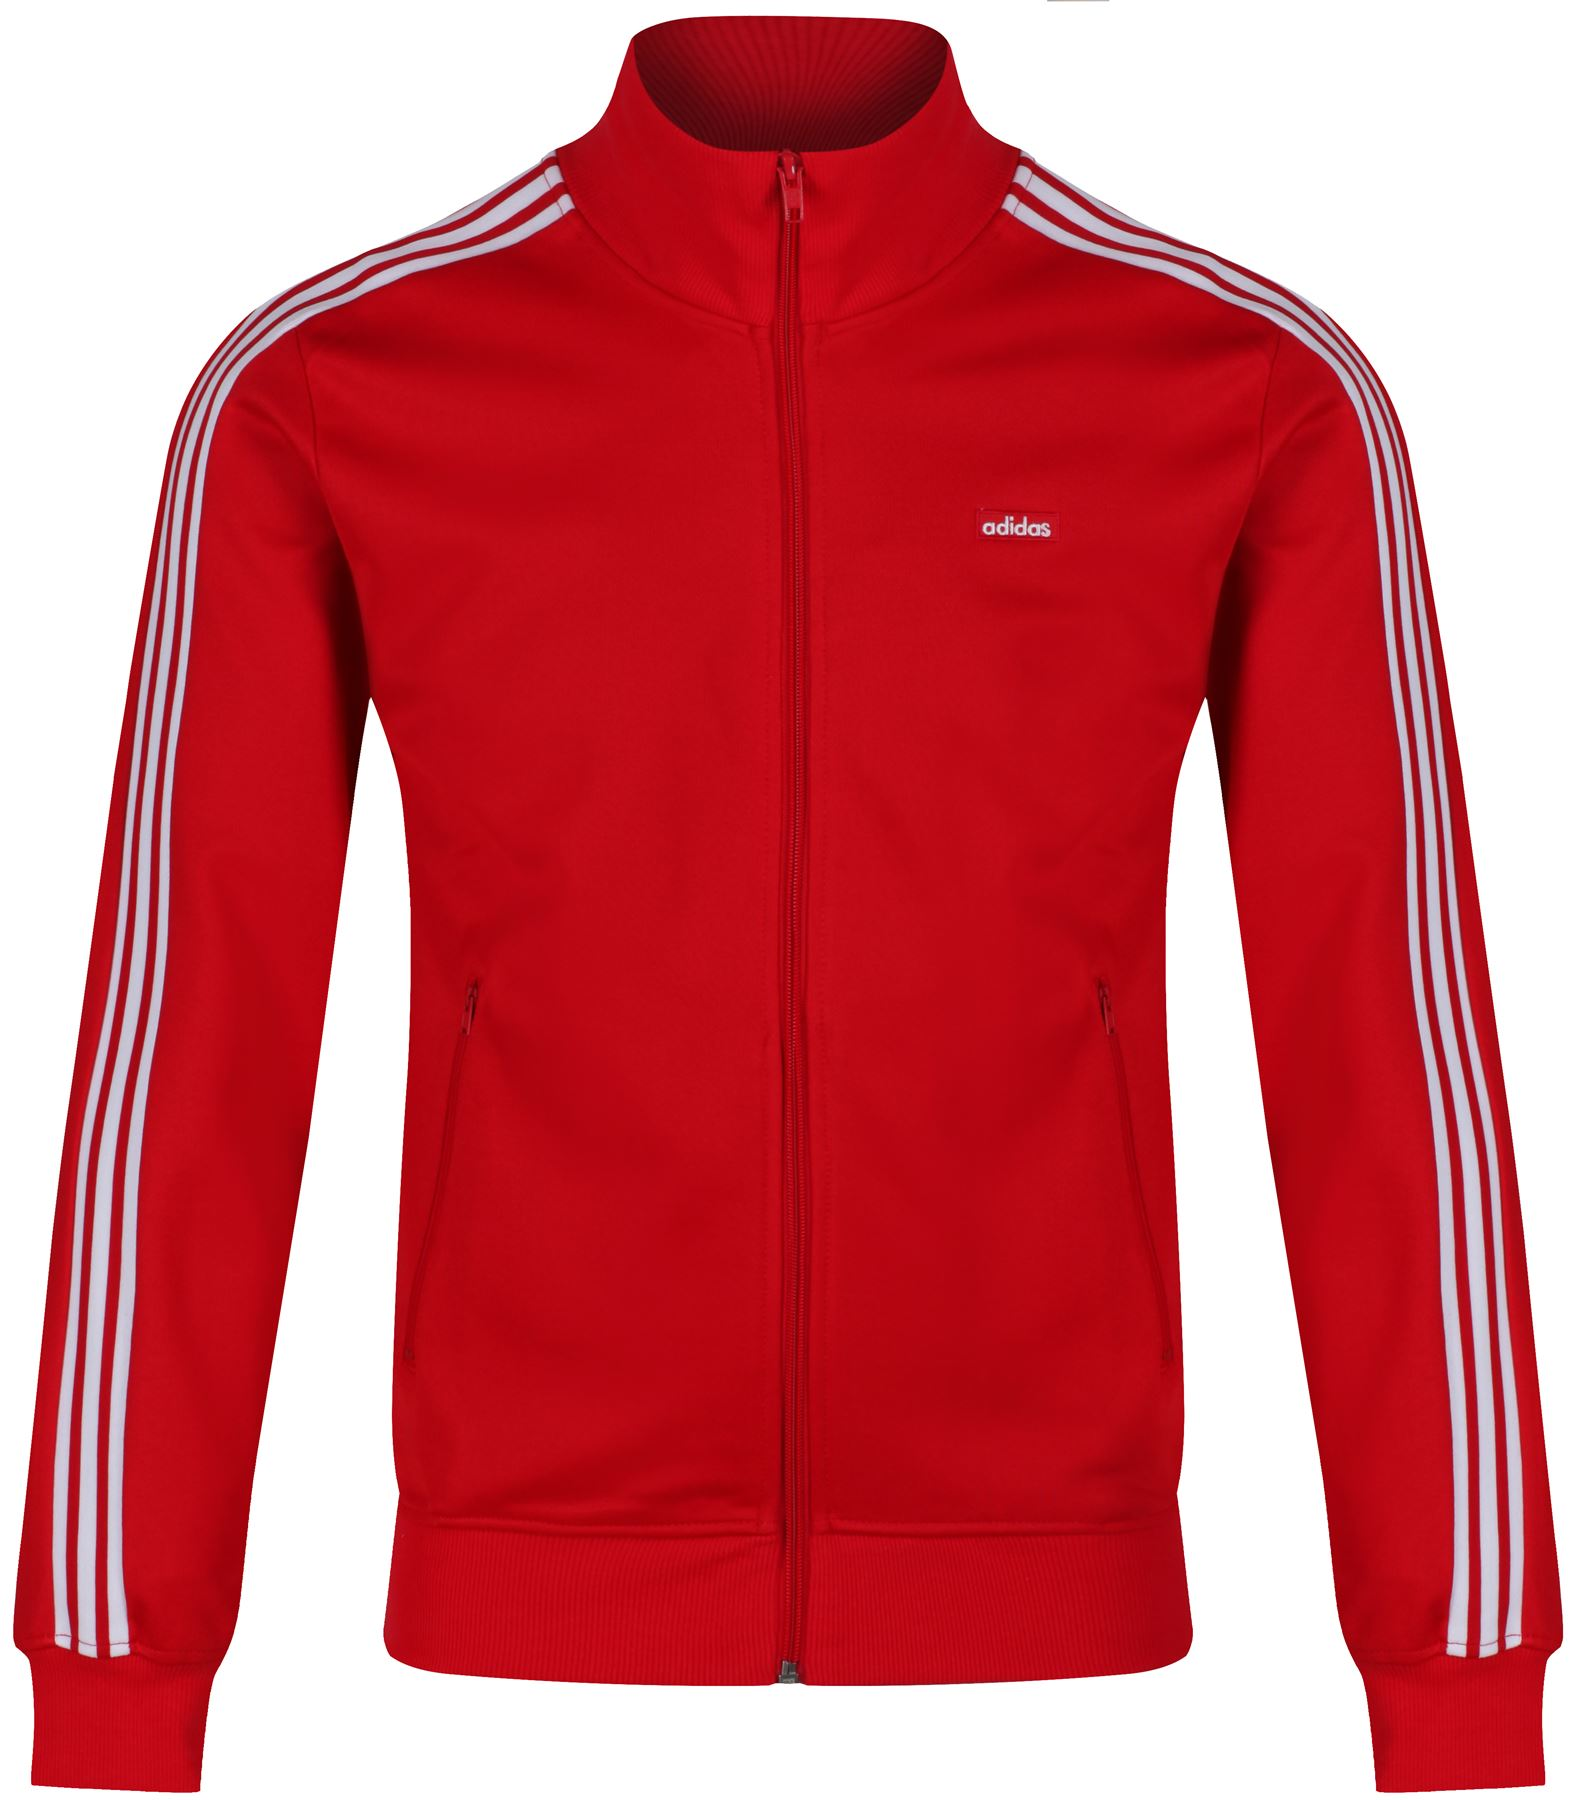 adidas-ORIGINALS-BECKENBAUER-TRACK-TOP-FULL-ZIP-JACKET-3-STRIPES-CASUAL-S-M-L-XL